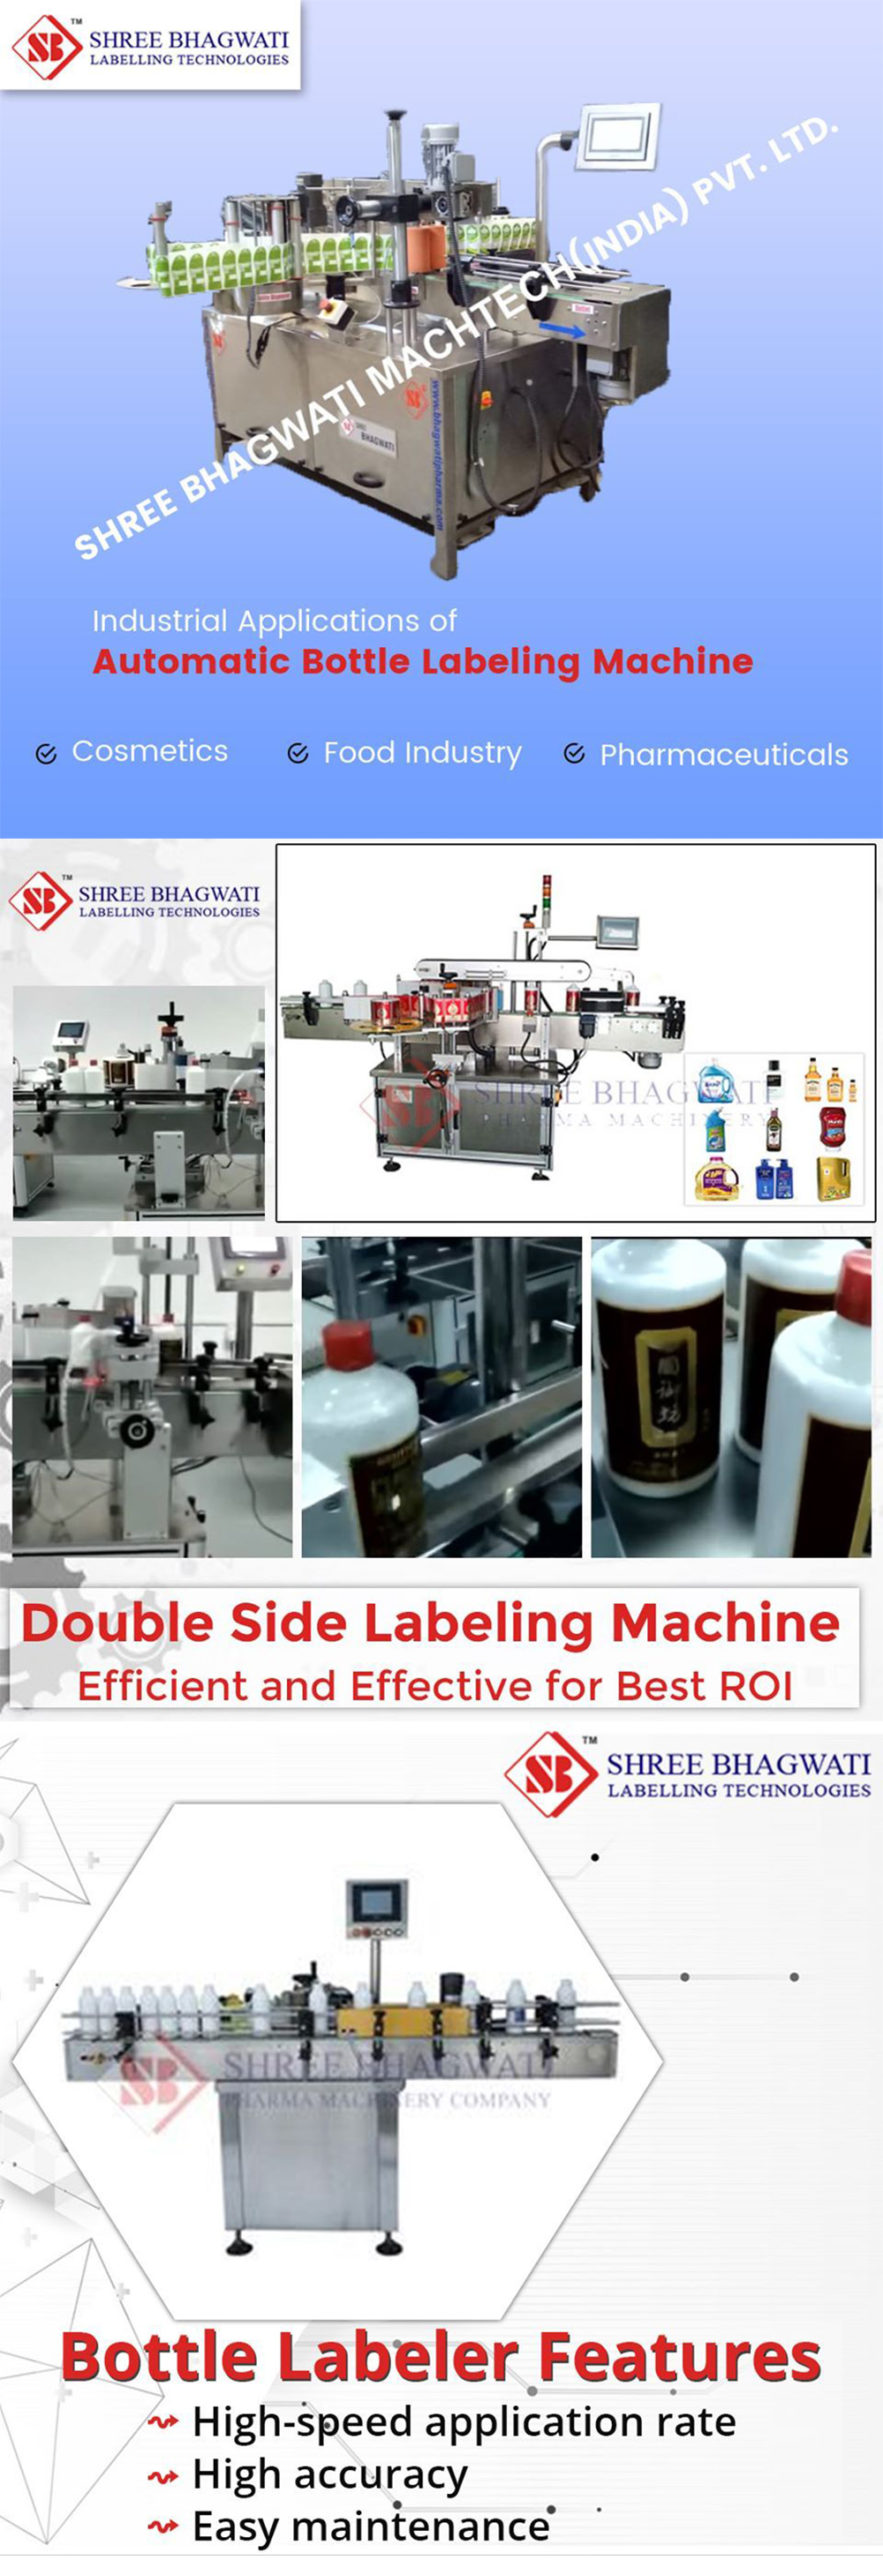 Label Applicator for Vial, Bottle, Jar, Jerry Can and Container Labelling Machine